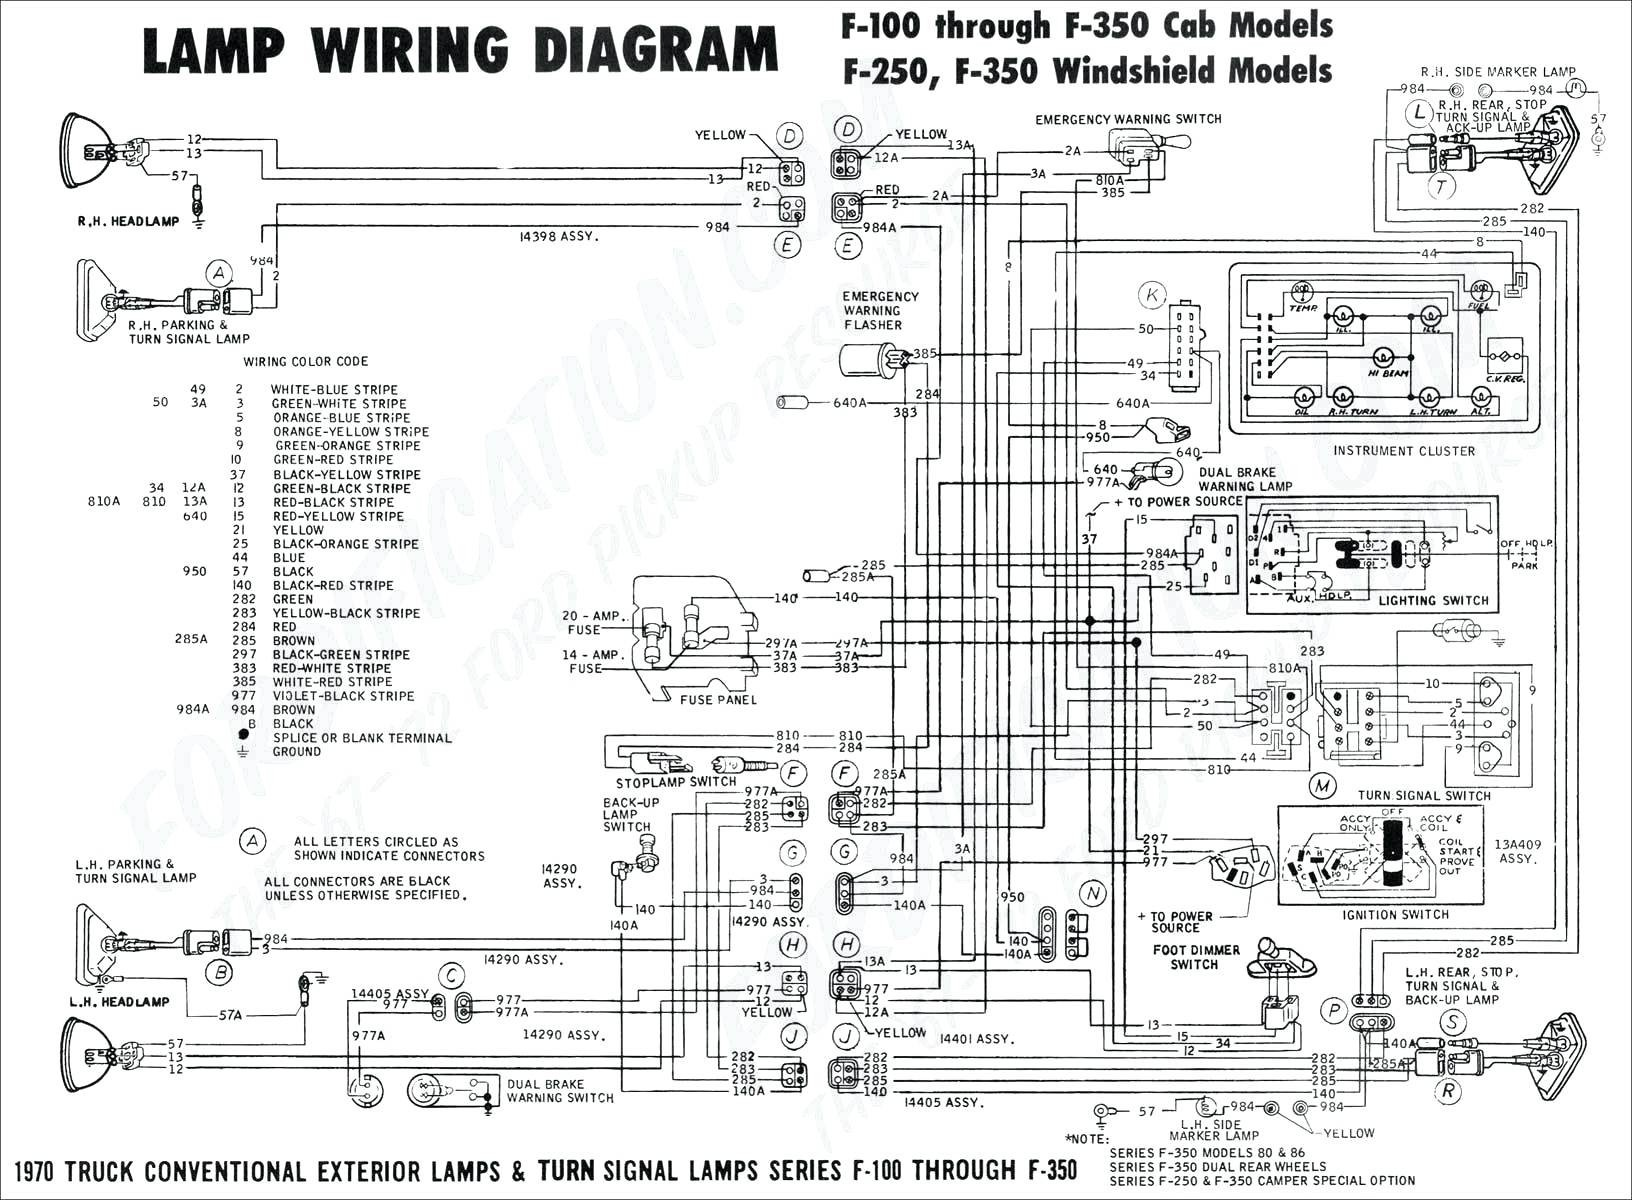 tbi harness diagram list of schematic circuit diagram u2022 rh orionproject  co 1999 Ford Taurus Fuse Box Diagram 2007 Ford Freestyle Fuse Box Diagram